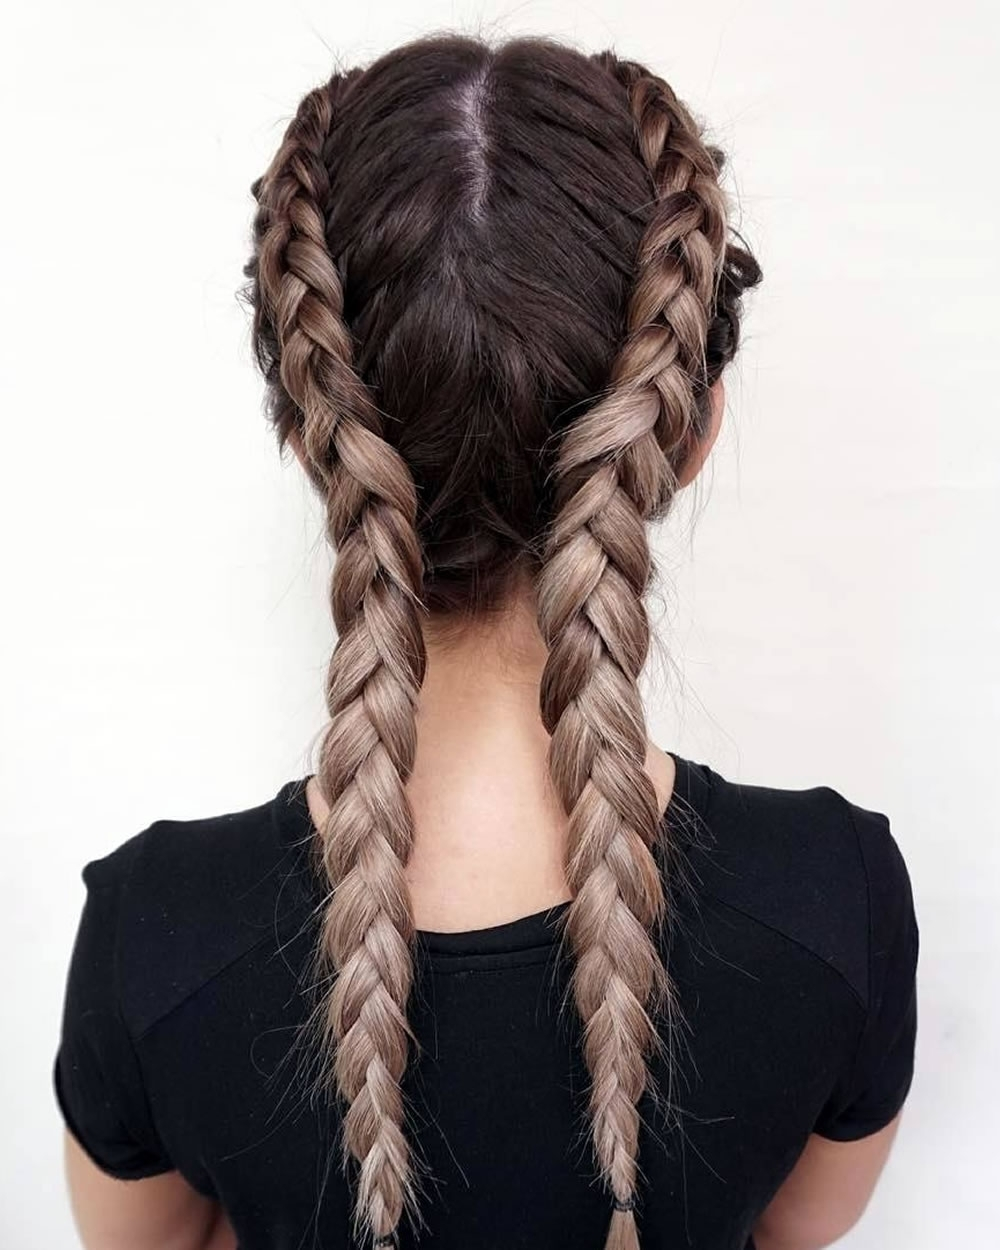 Latest Two French Braids And Side Fishtail Intended For French Braids 2018 (Mermaid, Half Up, Side, Fishtail Etc (View 8 of 15)